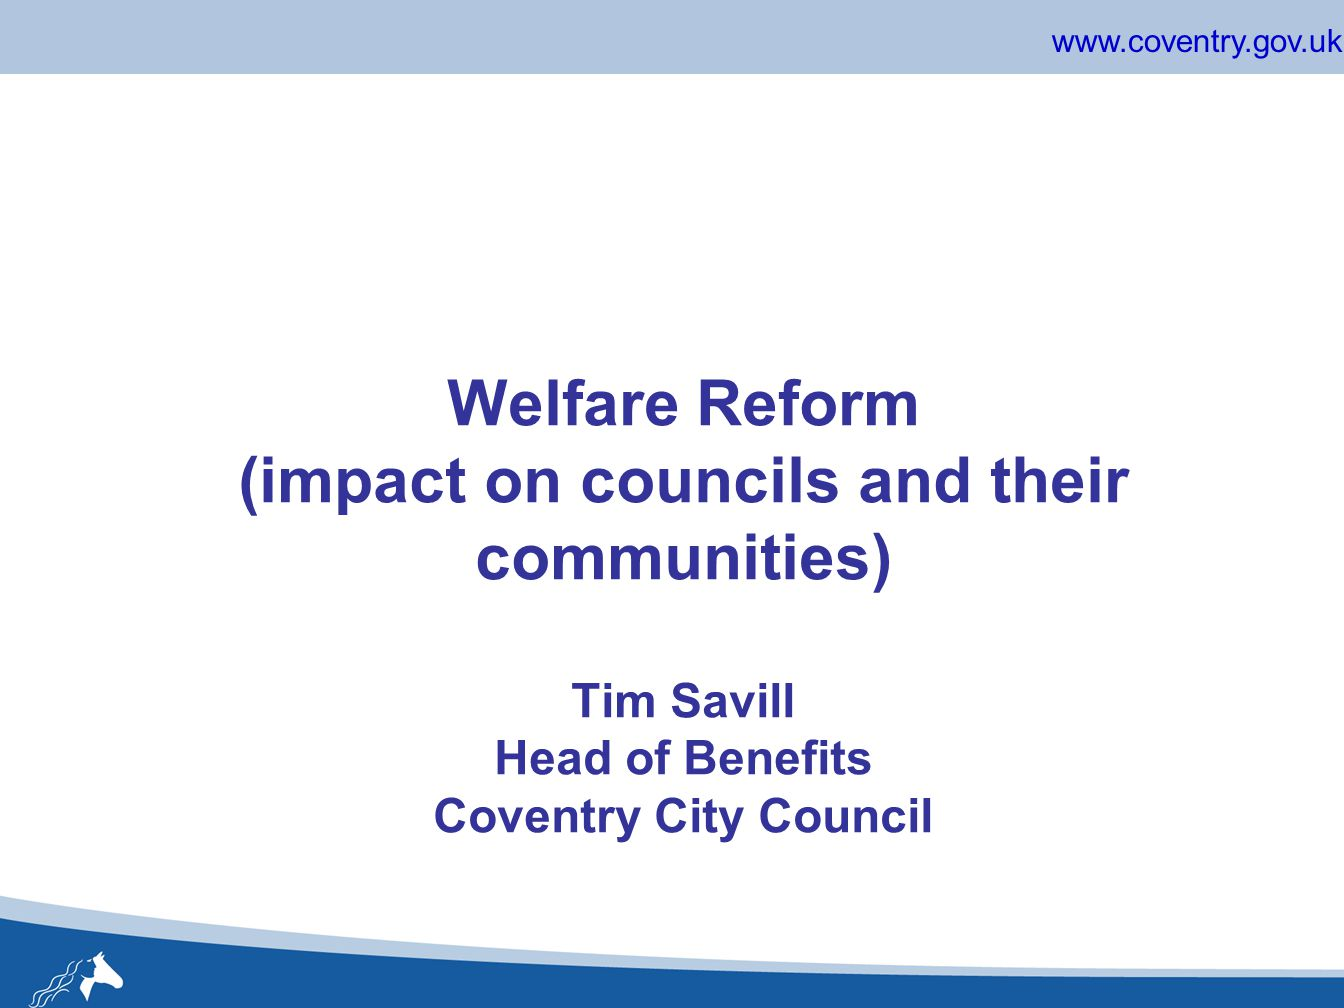 www.coventry.gov.uk Welfare Reform (impact on councils and their communities) Tim Savill Head of Benefits Coventry City Council